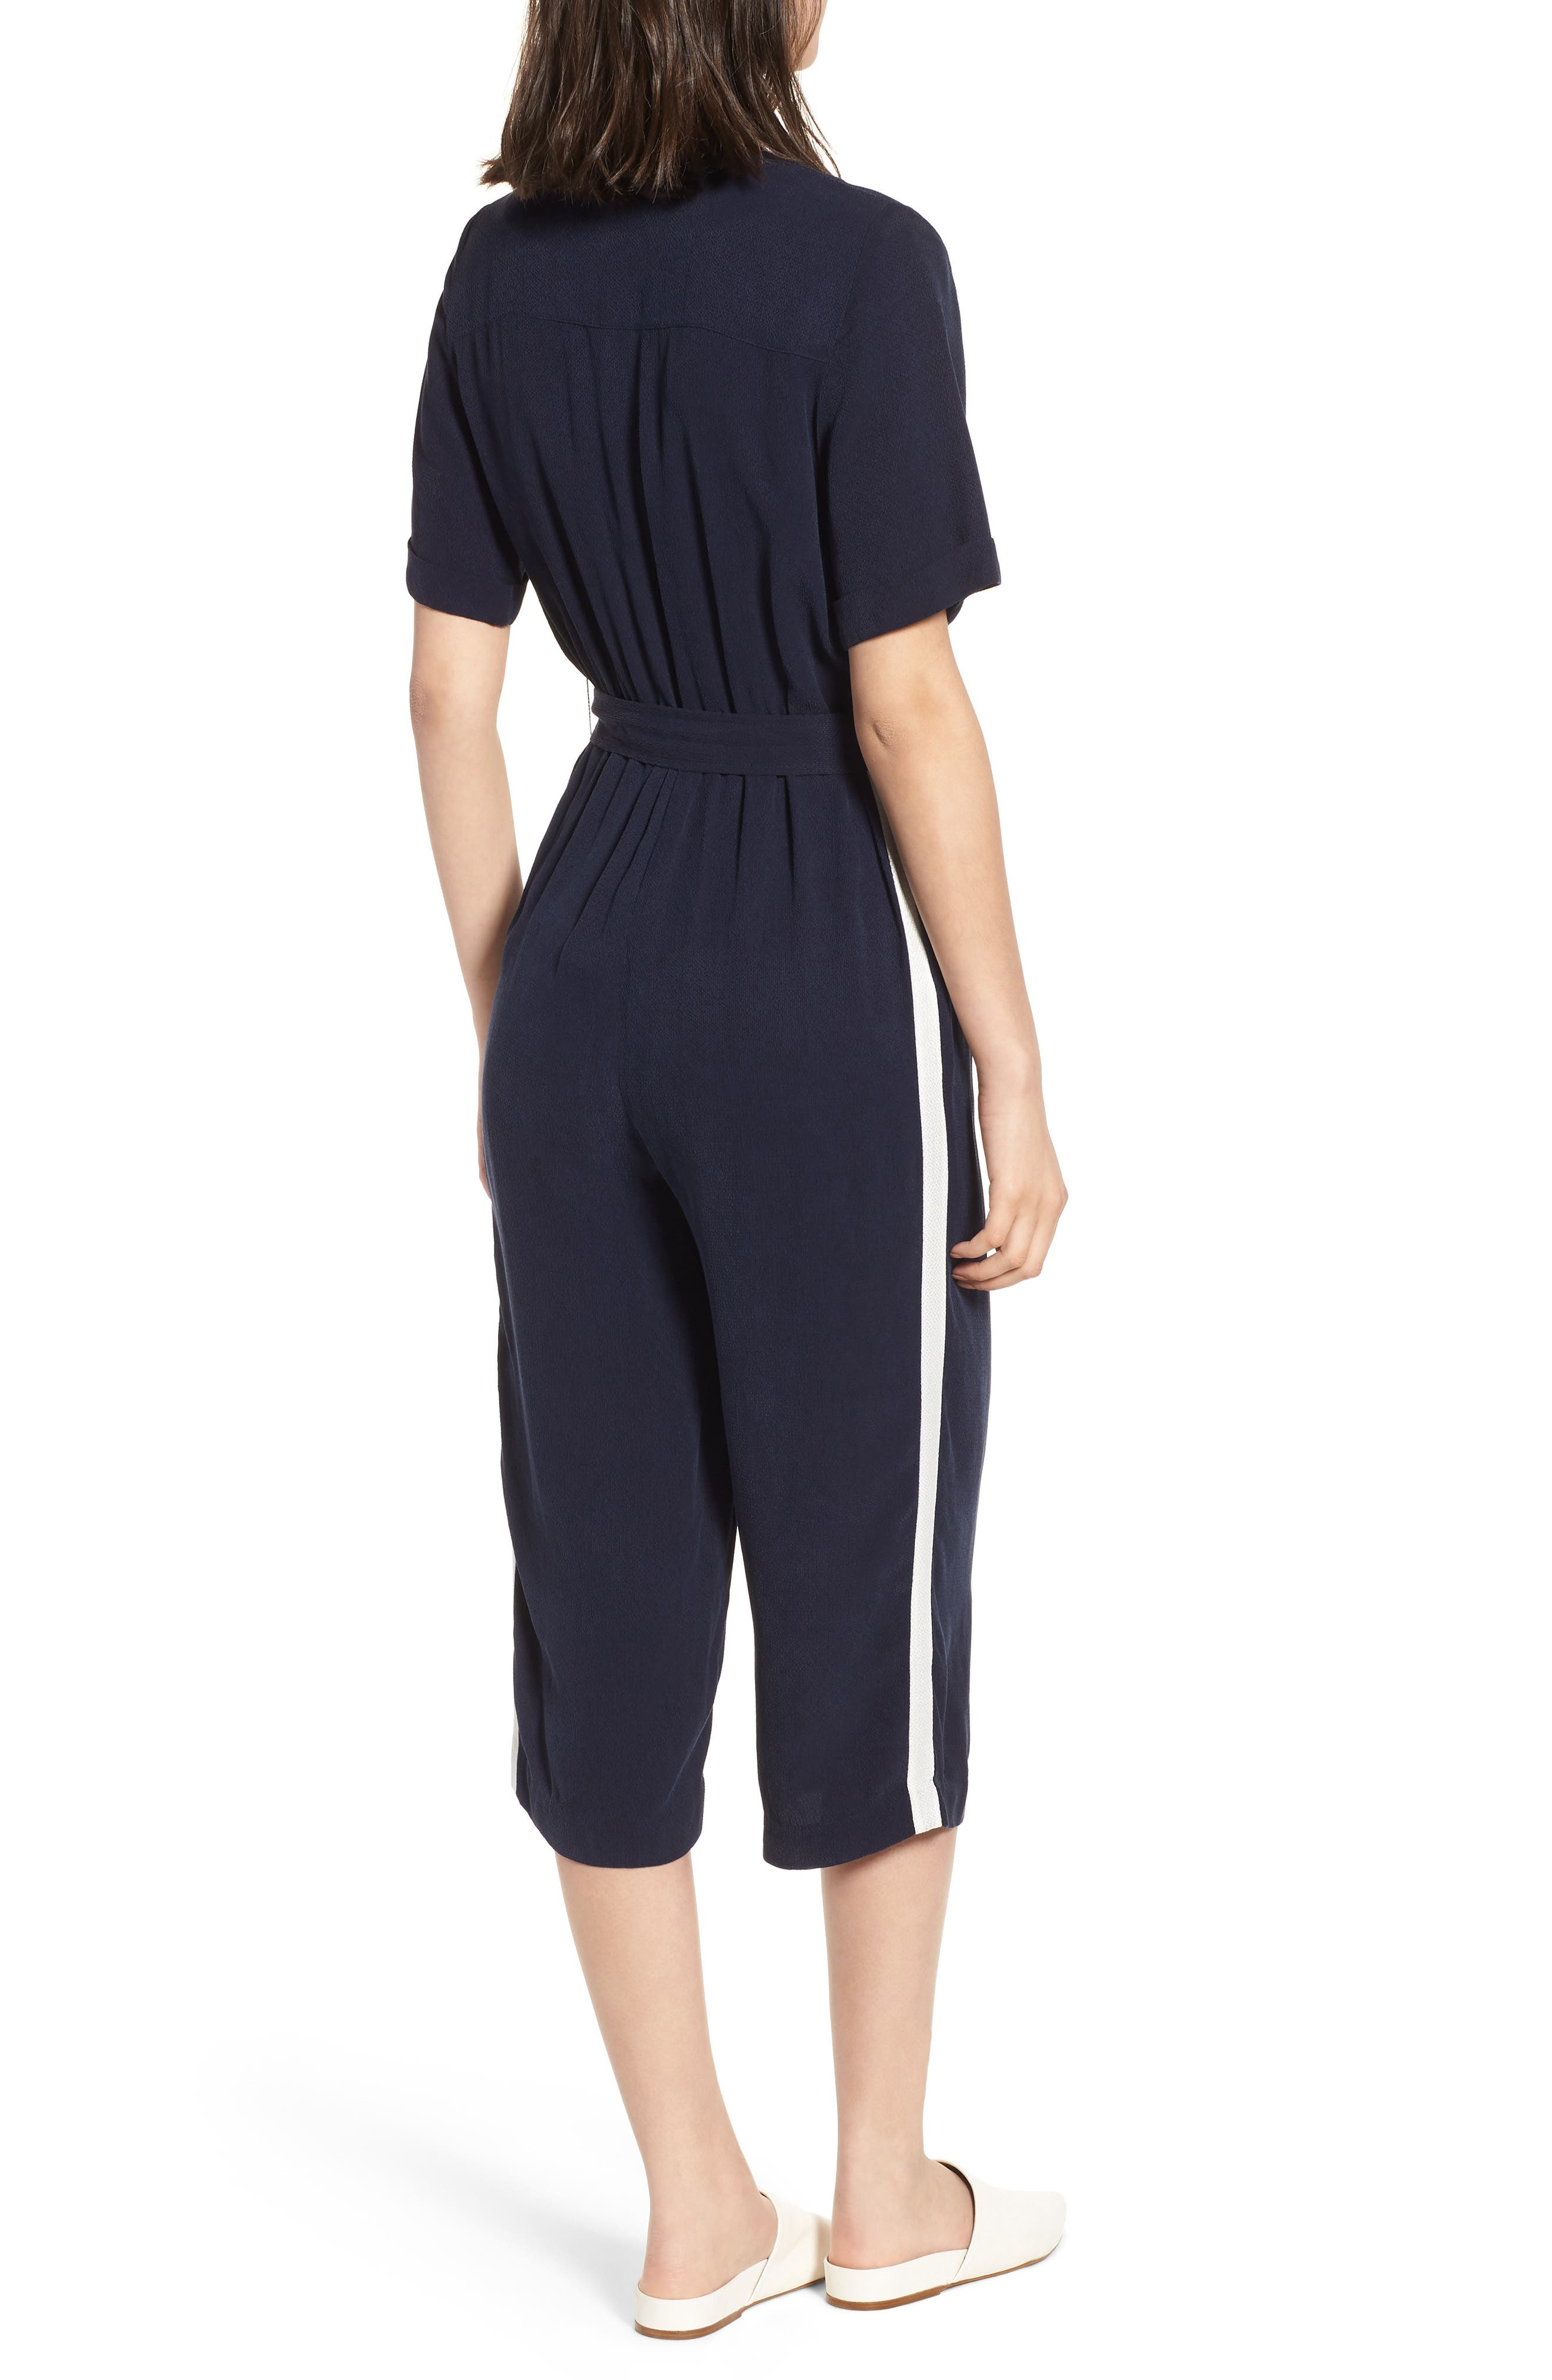 Downstairs Crop Jumpsuit,                             Alternate thumbnail 2, color,                             410